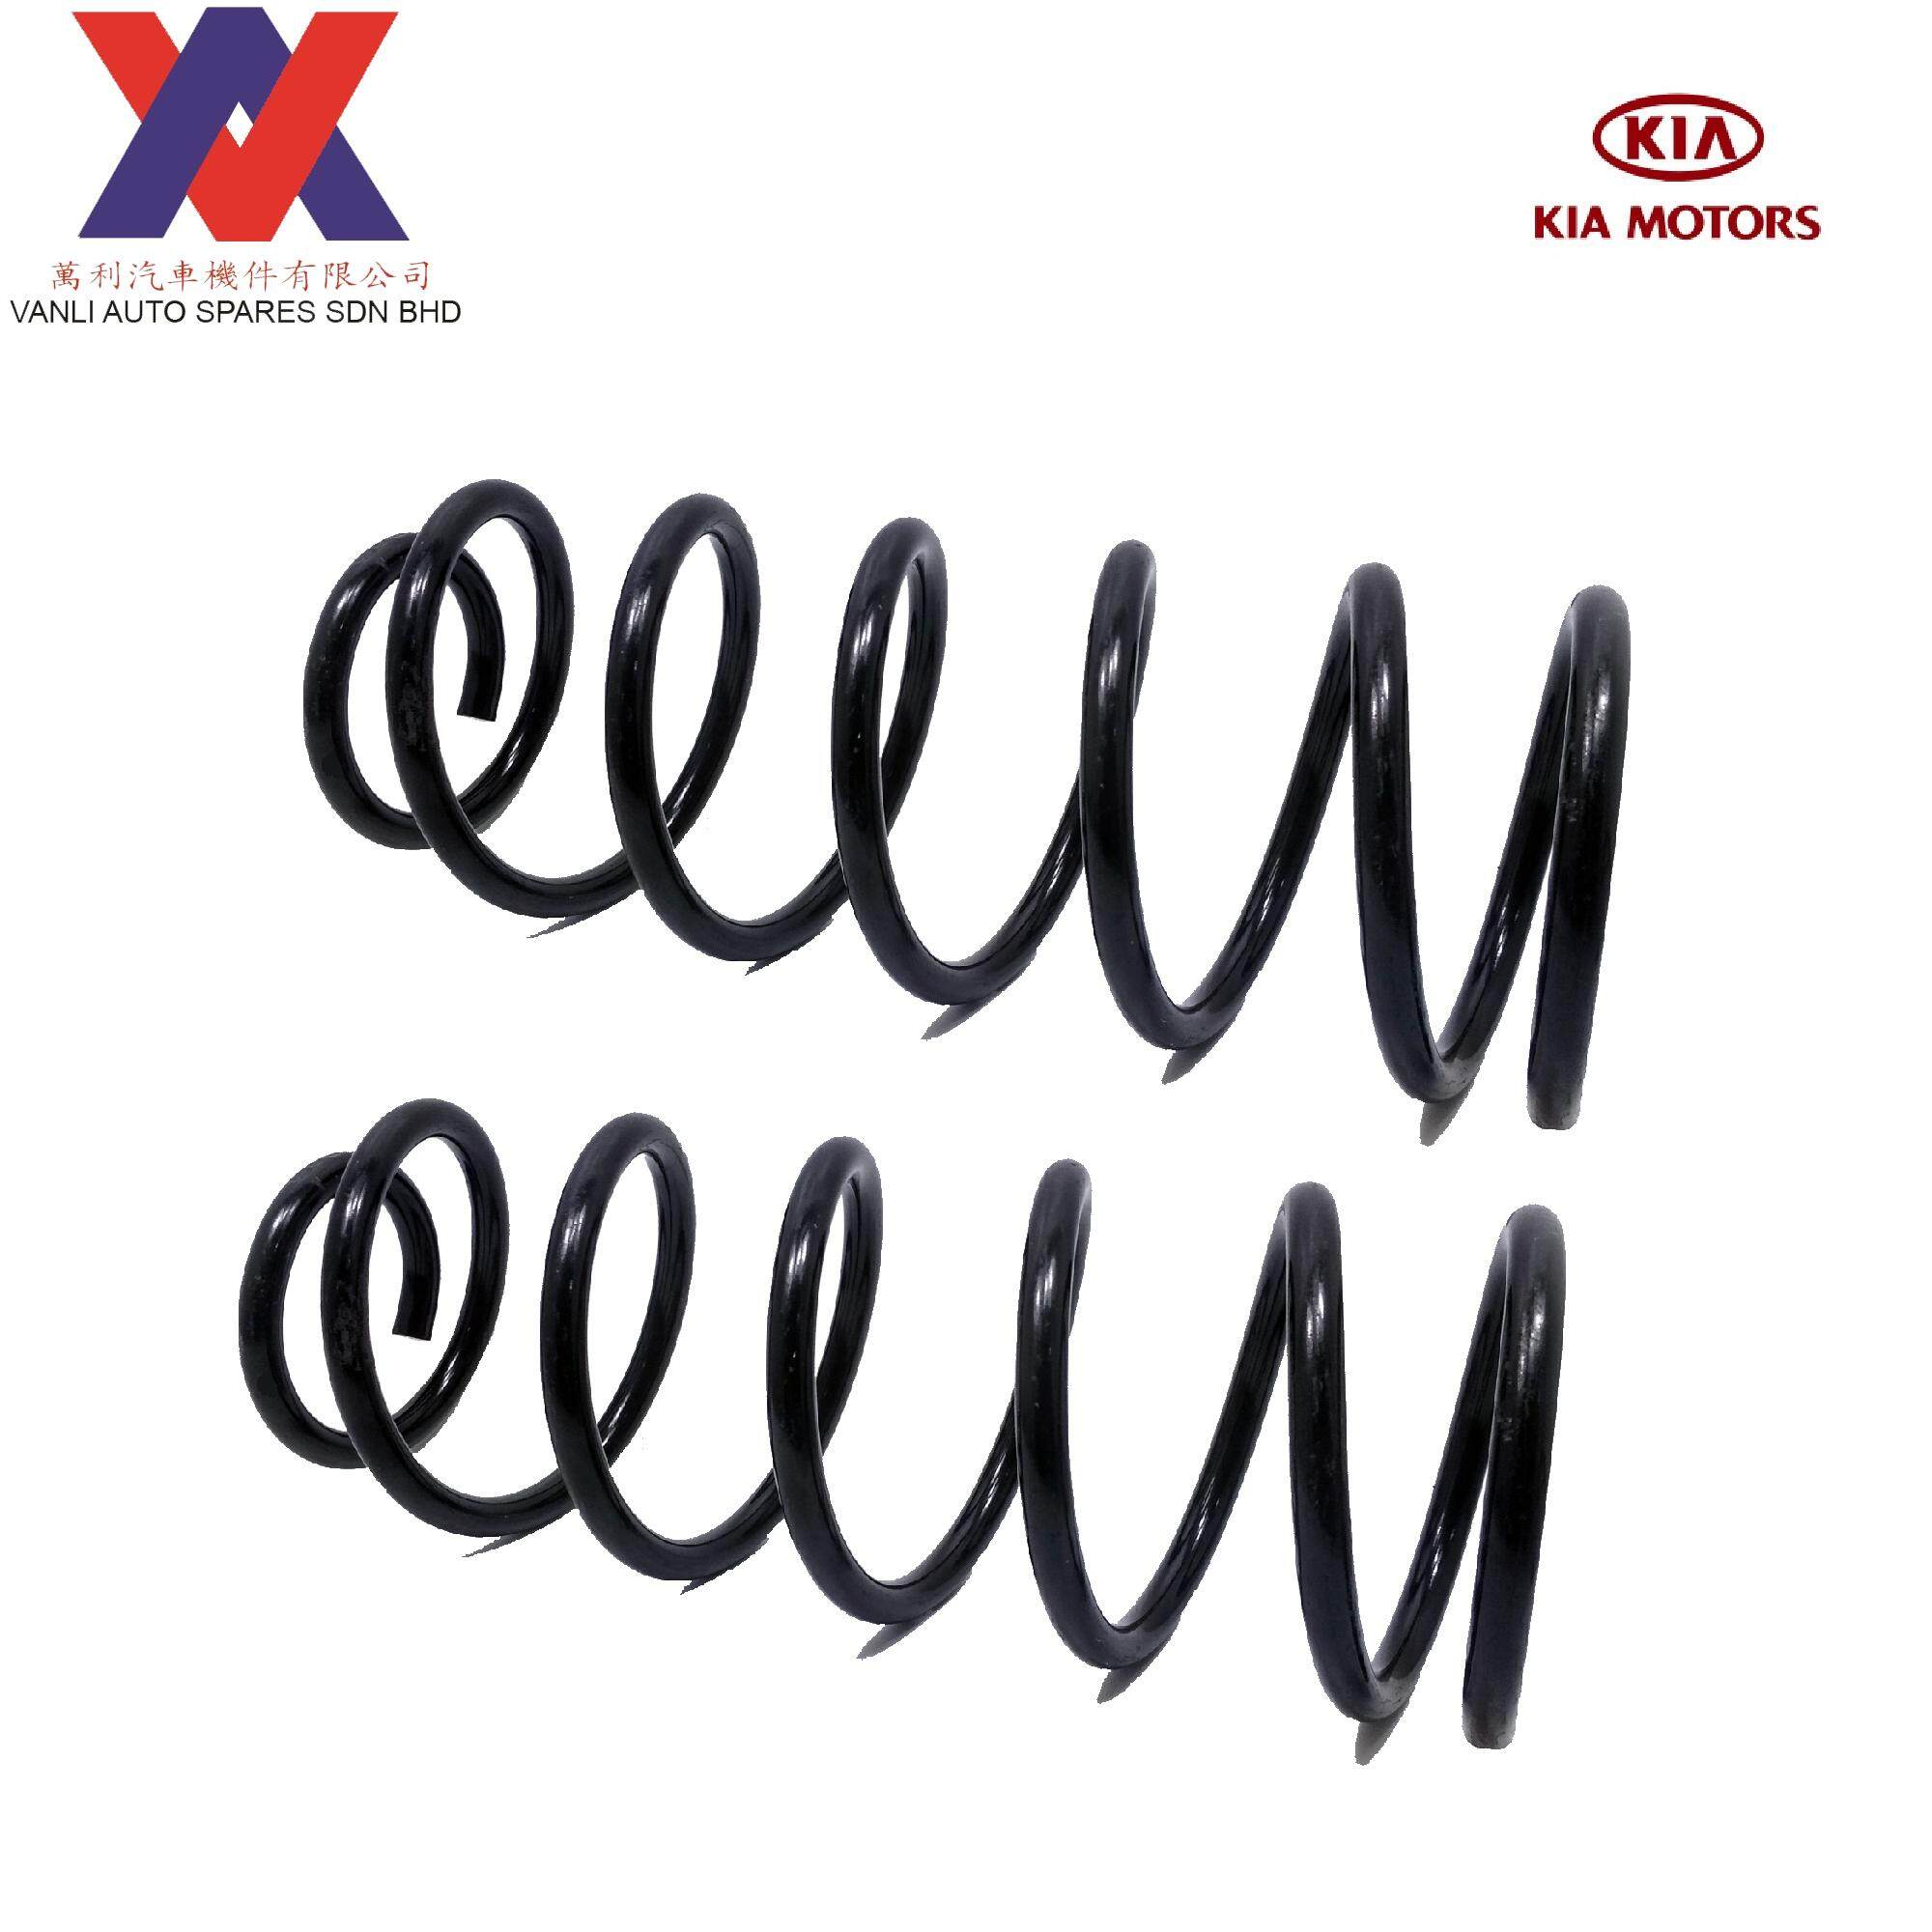 Kia Auto Parts Spares Price In Malaysia Best Rio Timing Belt Cover Rear Coil Spring For 14cc 2005 1 Pair R